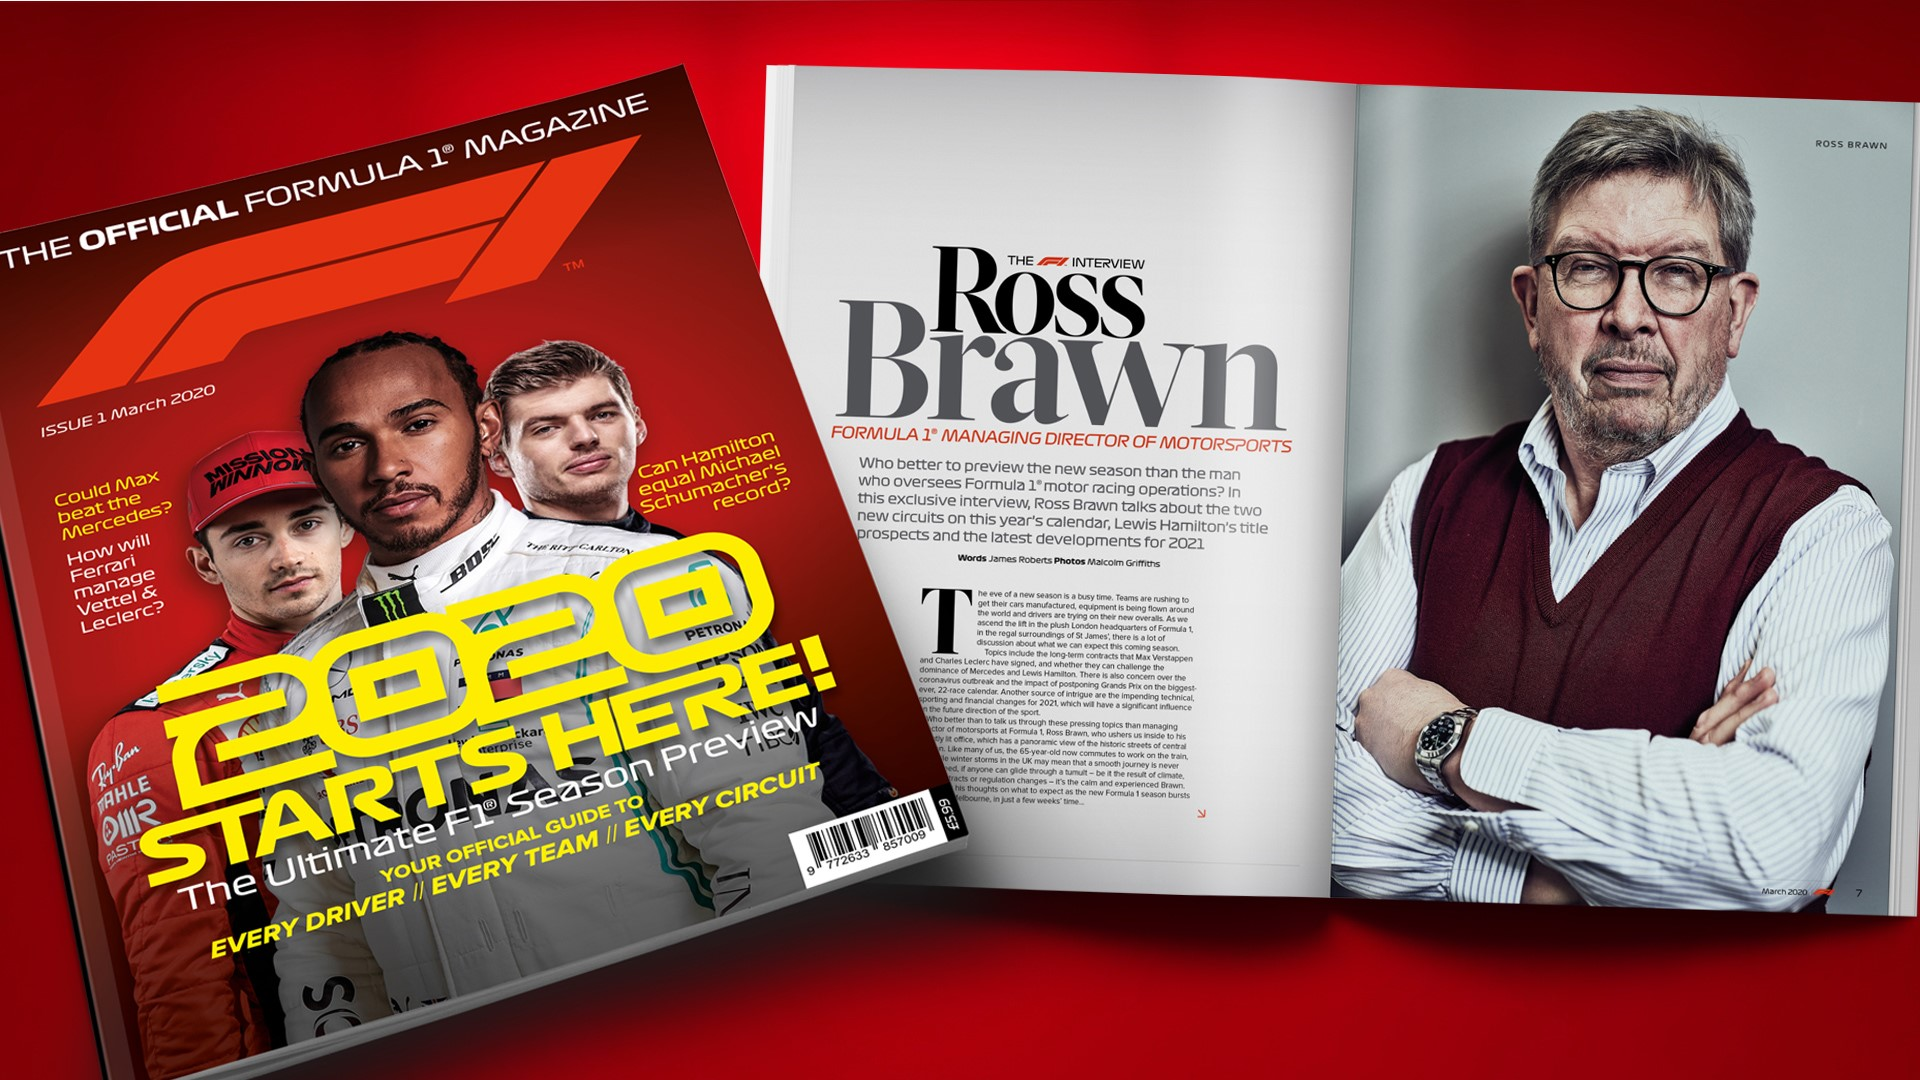 La Formule 1 lance son magazine officiel 14